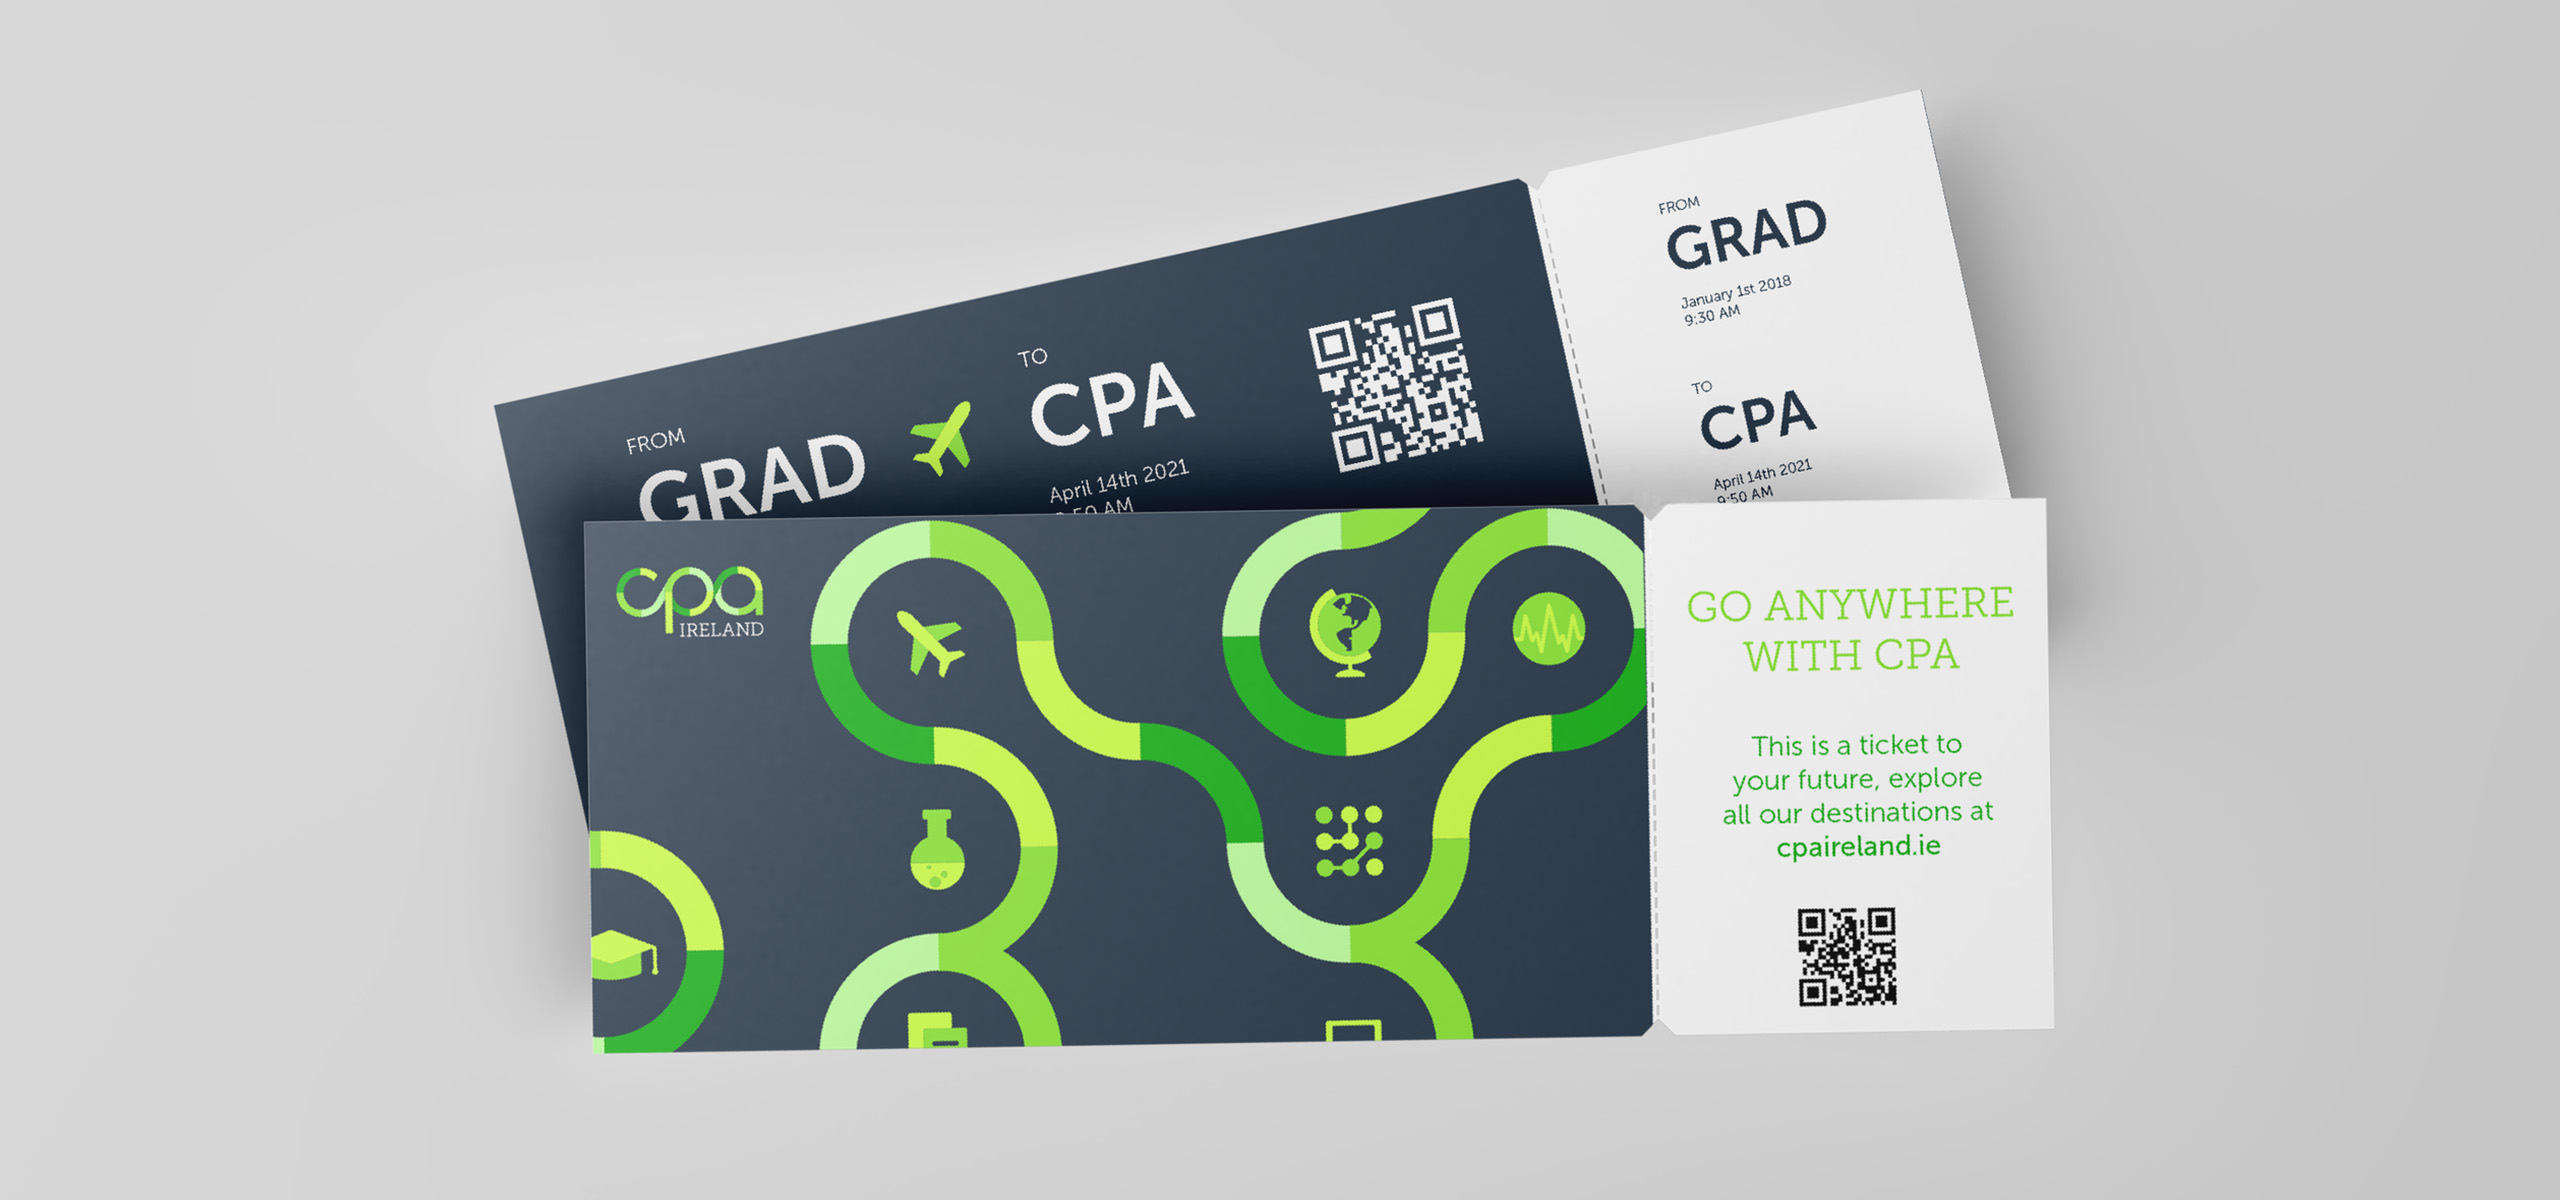 Ticket promotional concept for Irish accountancy brand CPA, designed by White Bear Studio